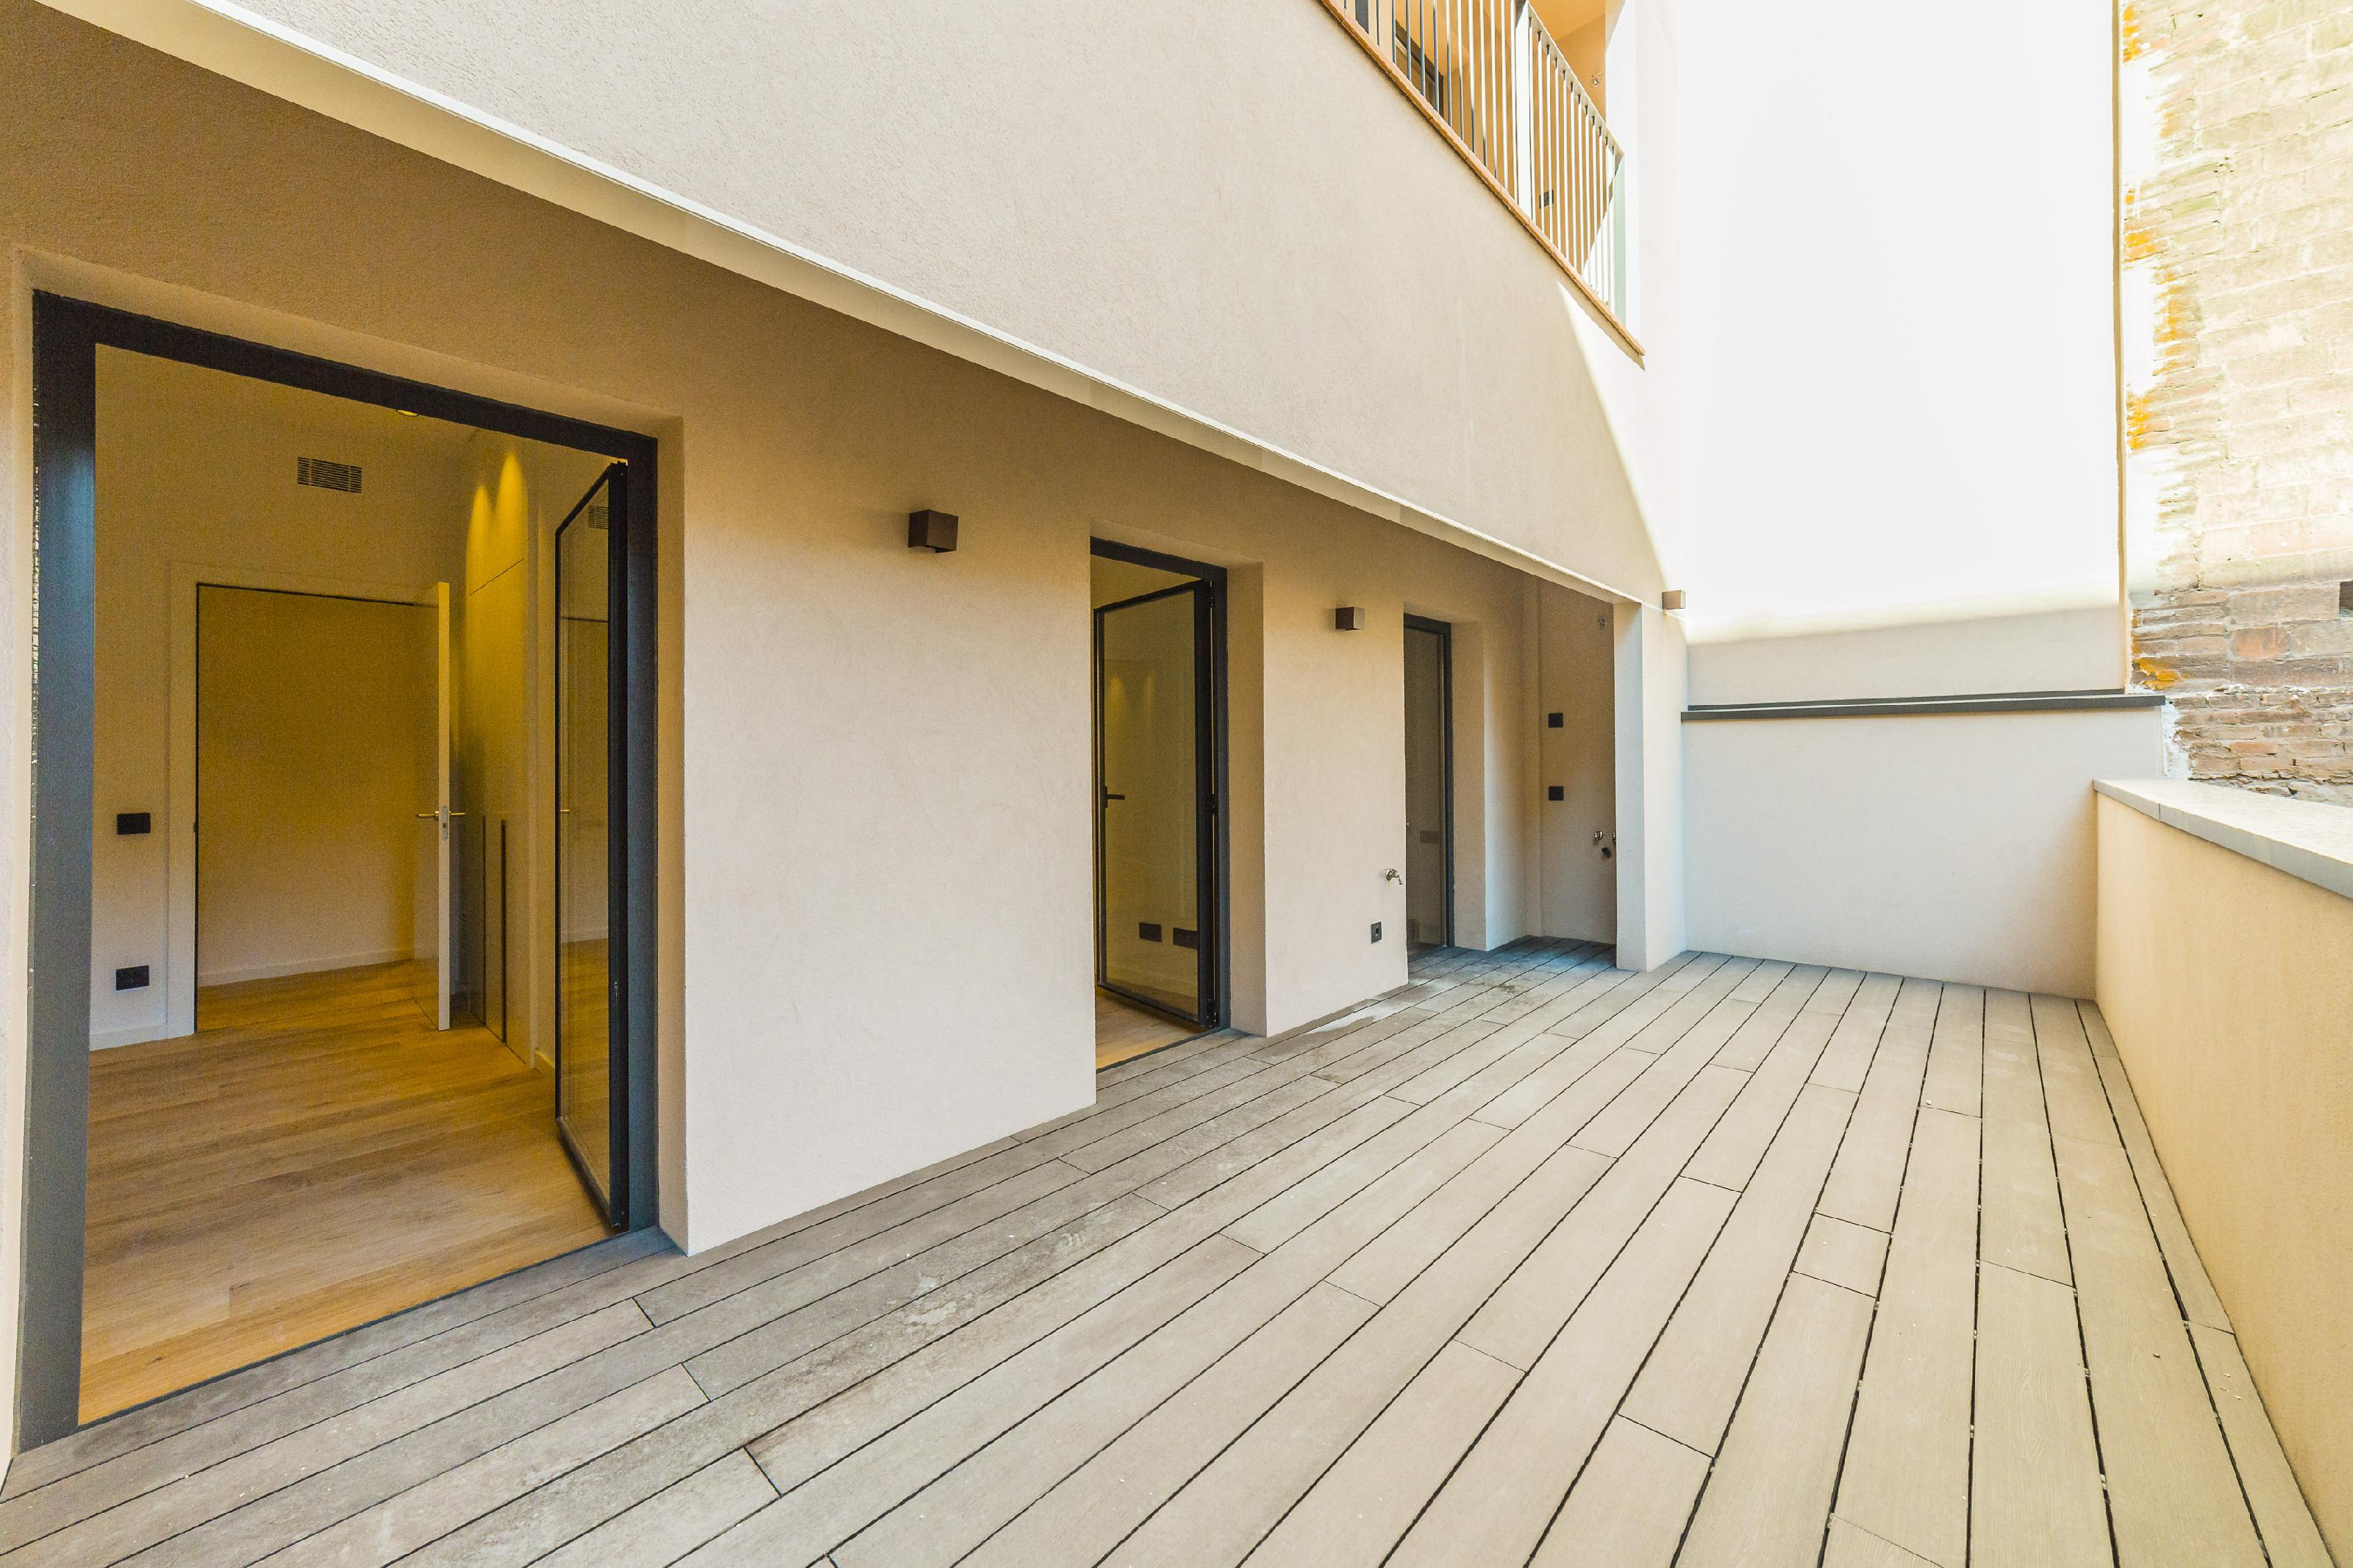 182176 Apartment for sale in Eixample, Old Left Eixample 5